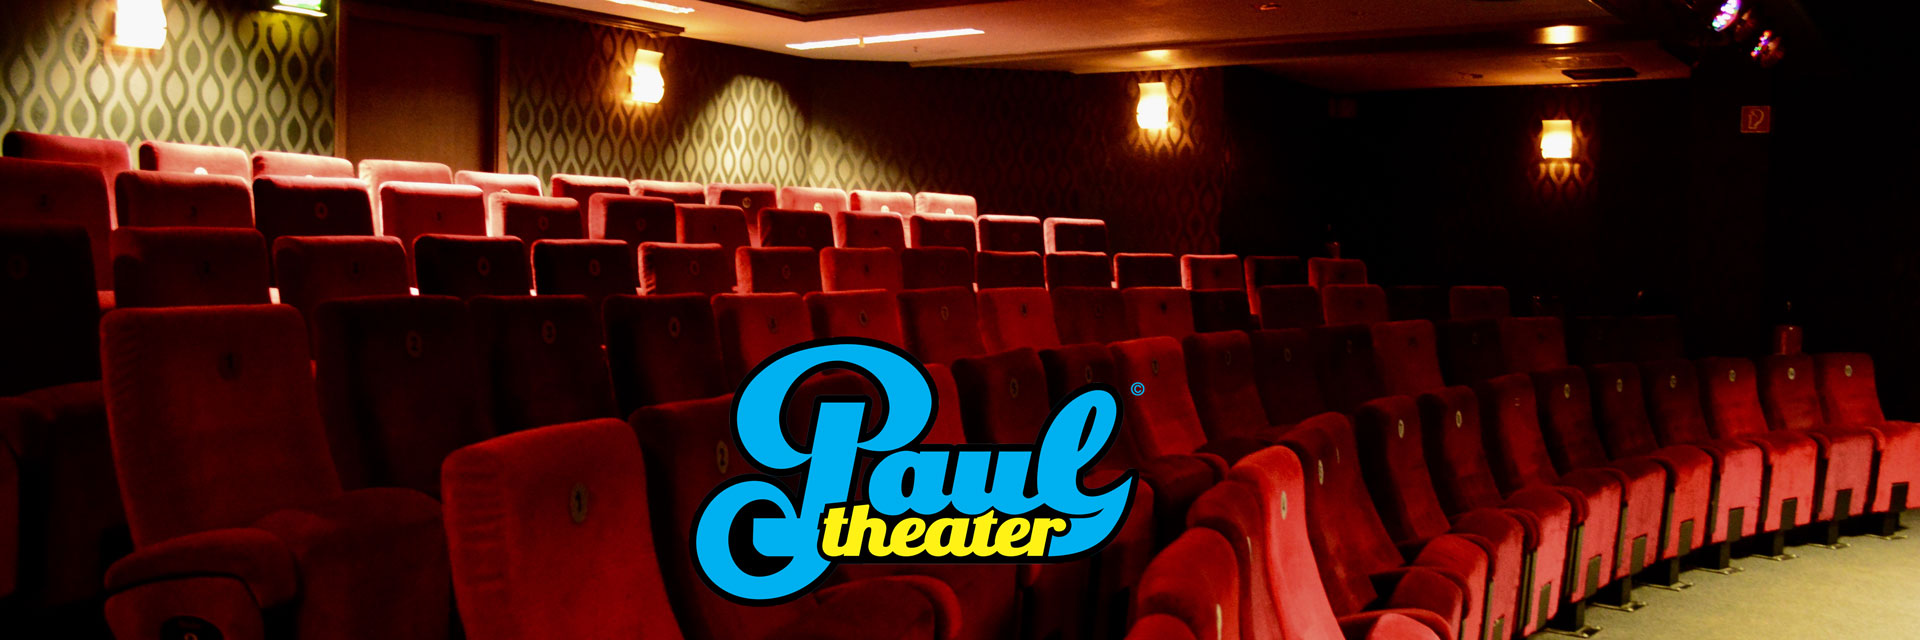 Der Paul-Theater-Jugendclub